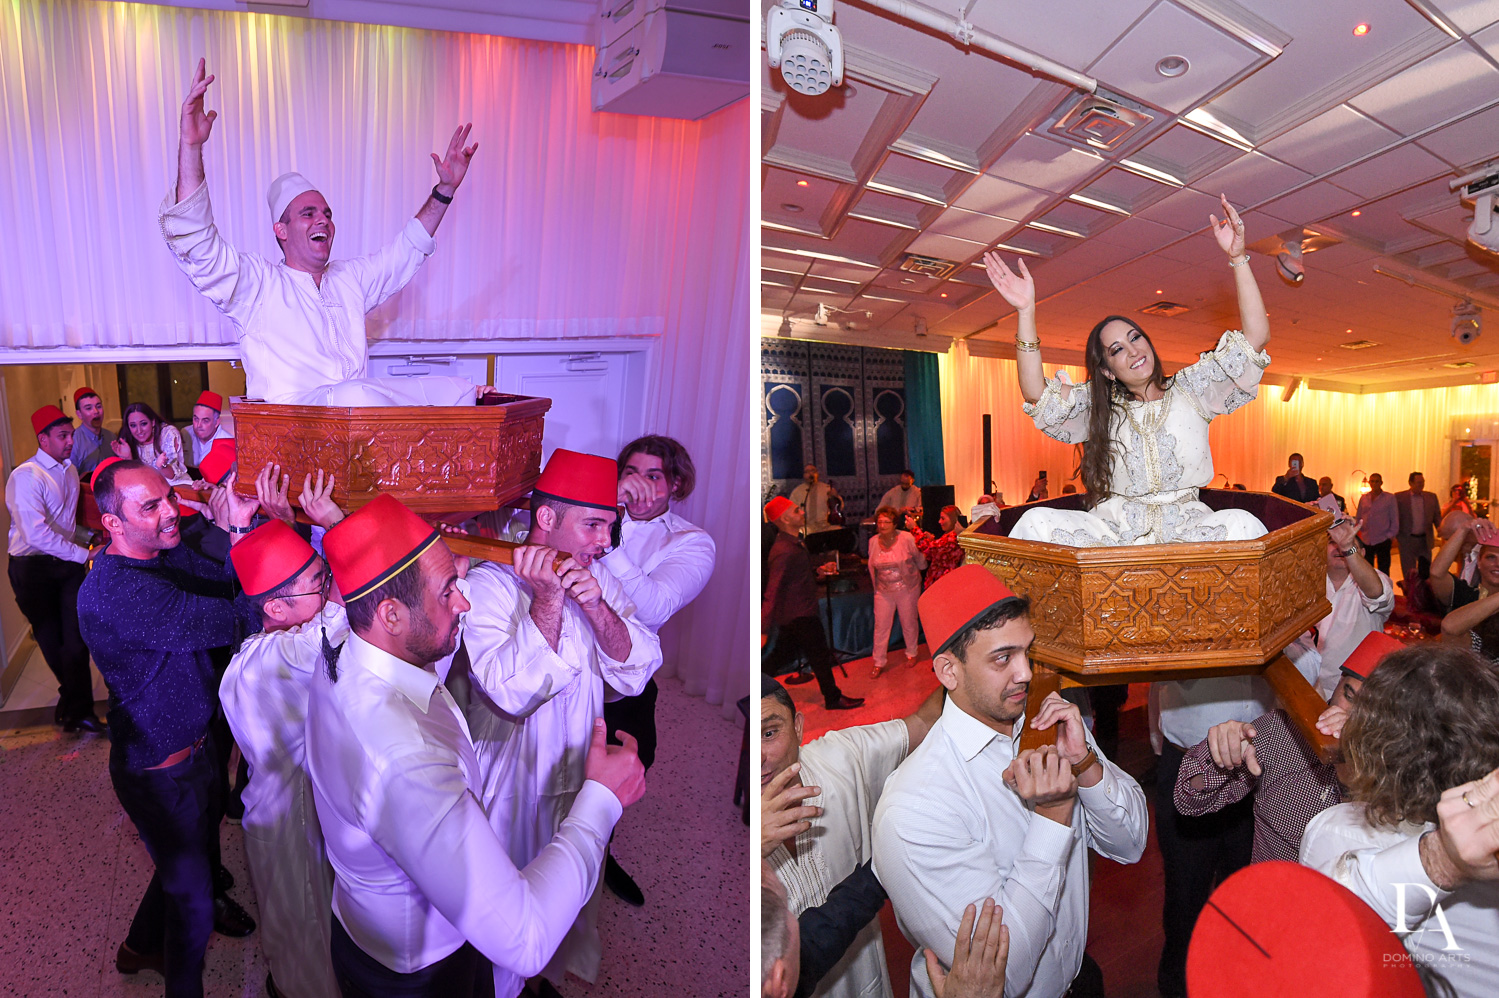 Fun traditions at Traditional Henna Party Photography at Lavan South Florida by Domino Arts